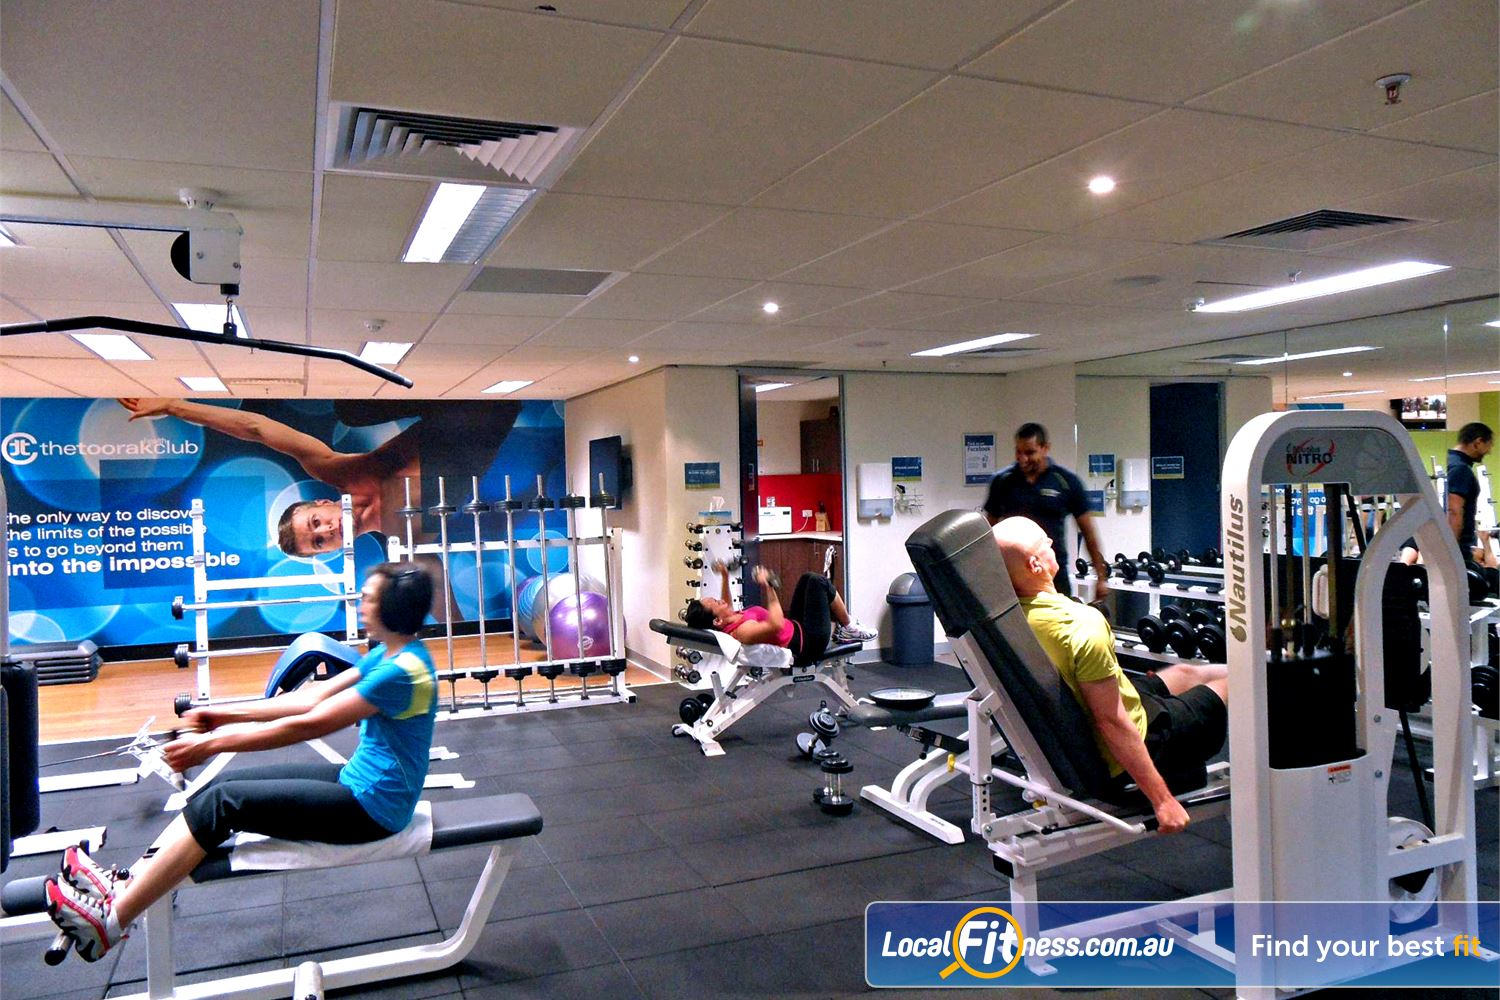 The Toorak Health Club Near Kooyong Our Toorak gym provides everything you need for your health.